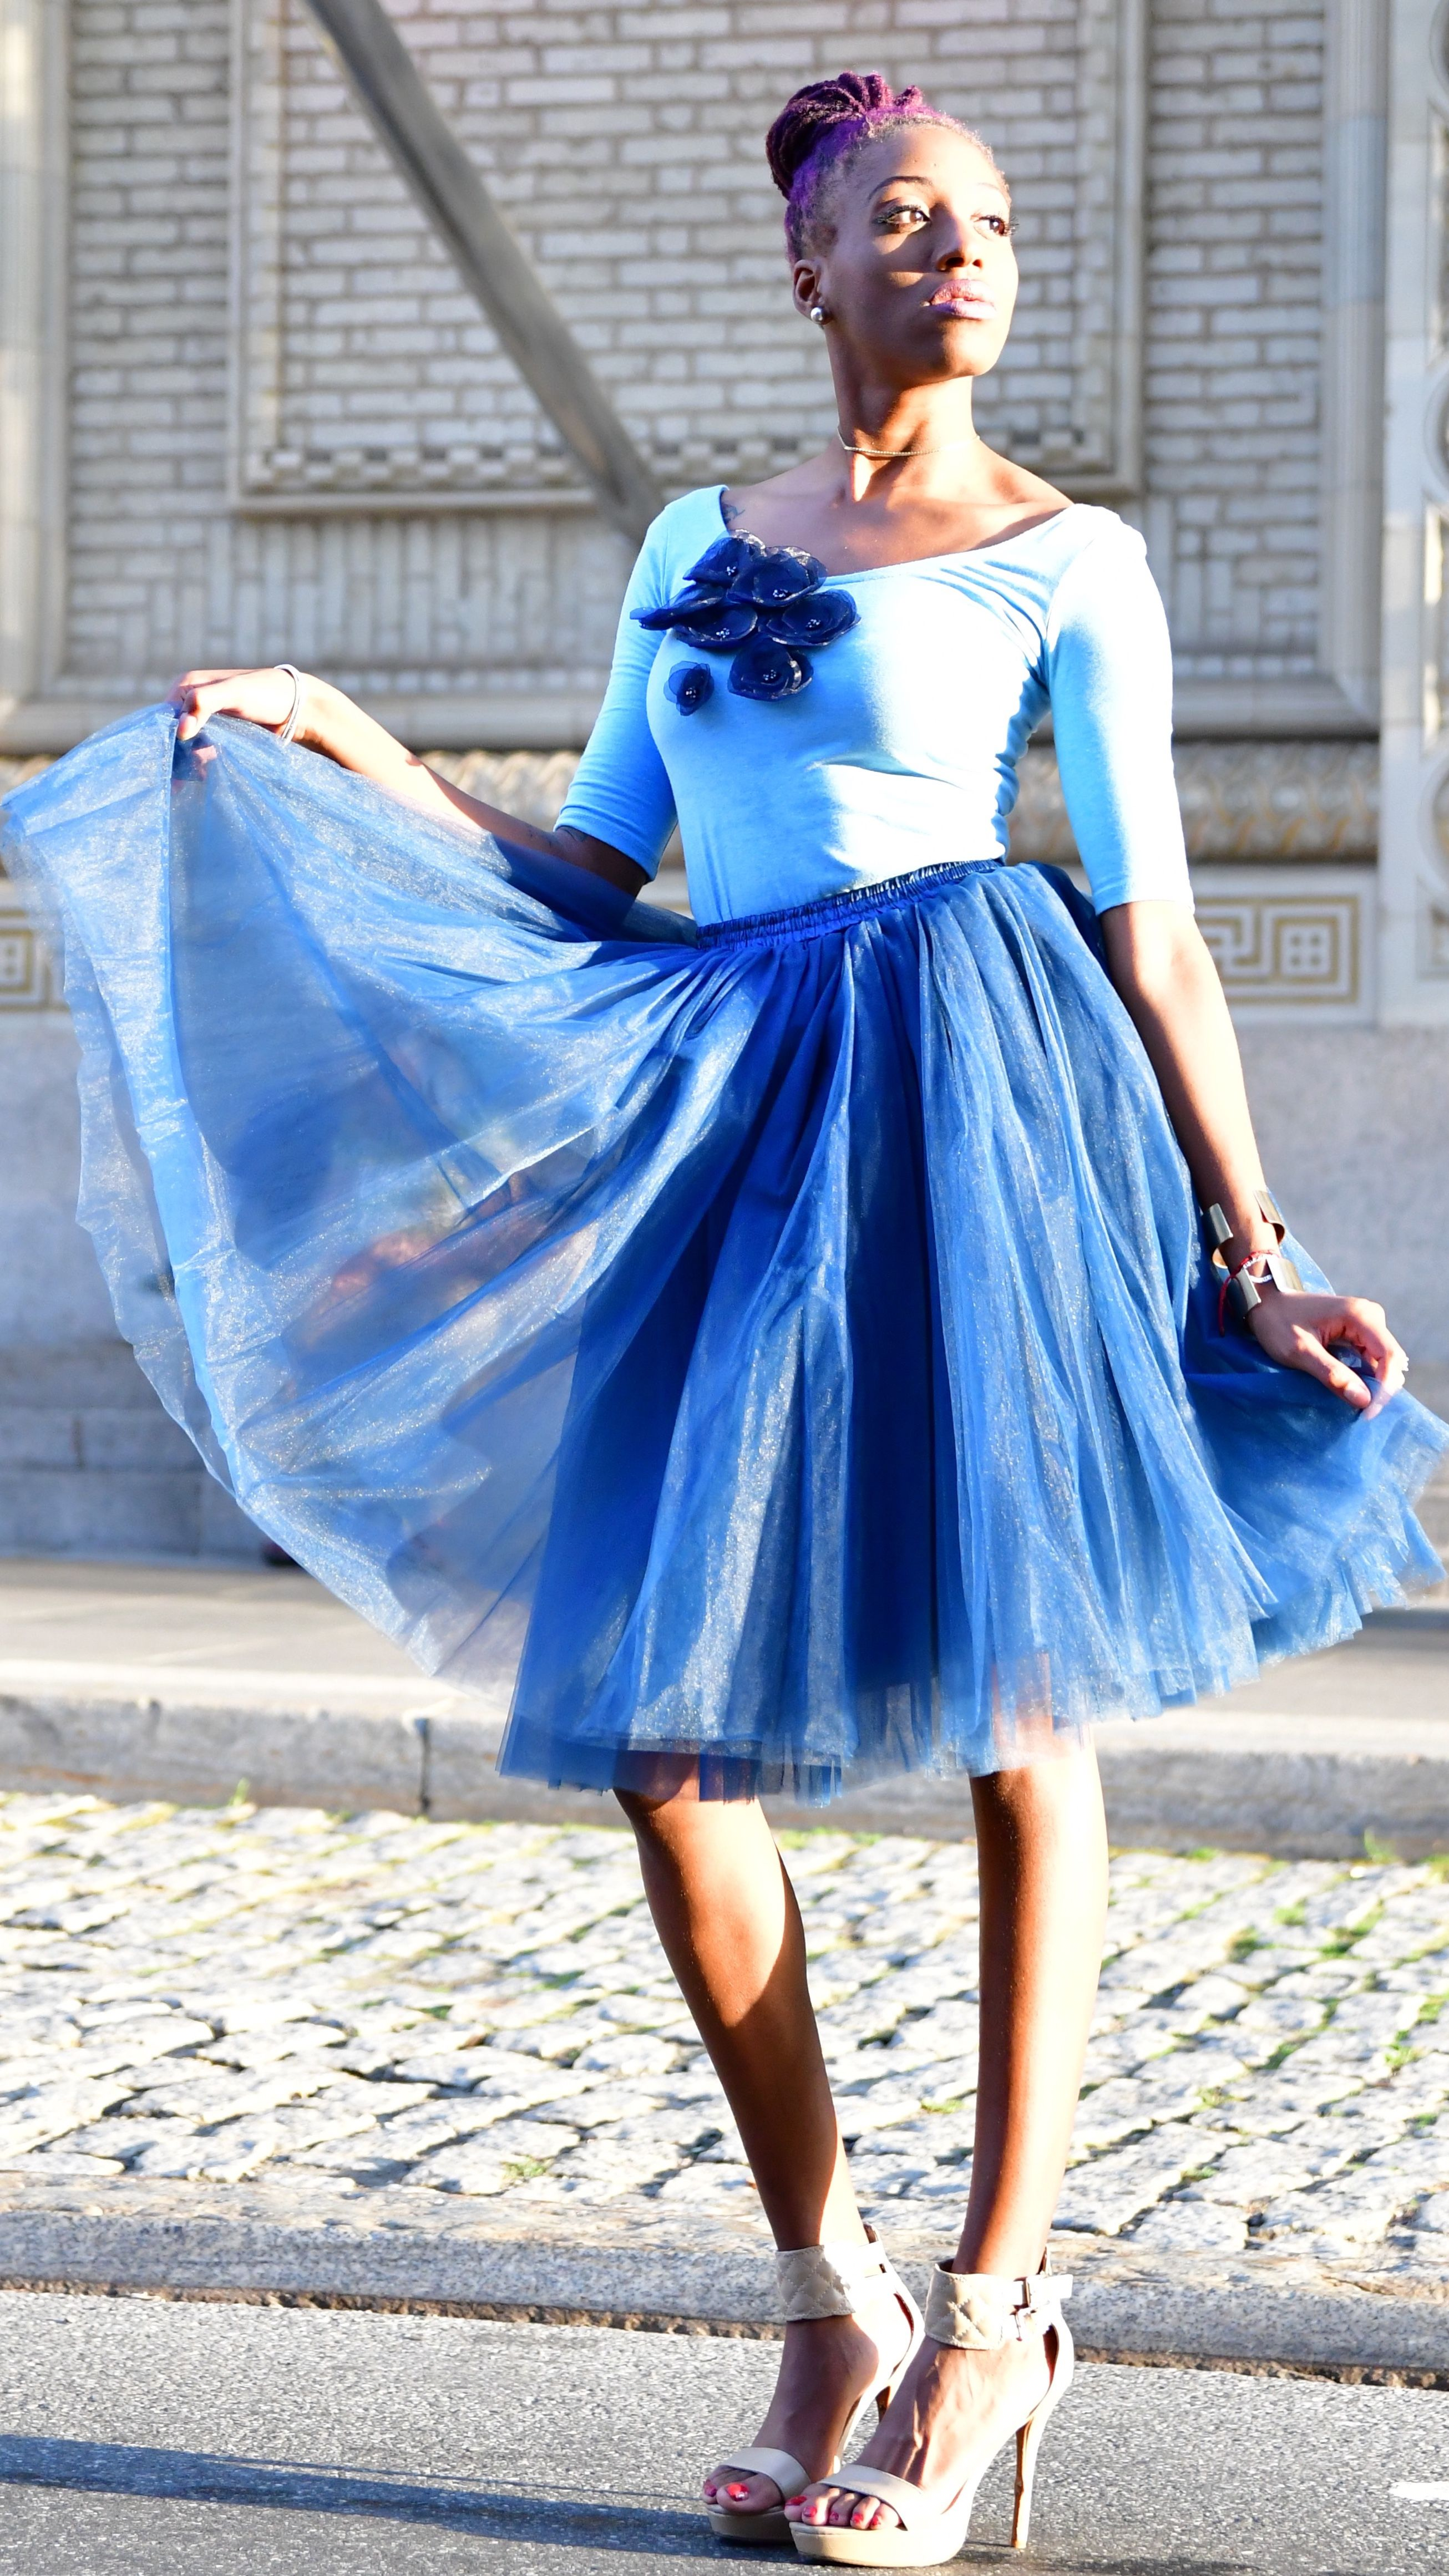 fcbabae95a Blue Tulle Skirt, Tulle Skirts, Puffy Skirt, White Lace Blouse, Boutique  Shop